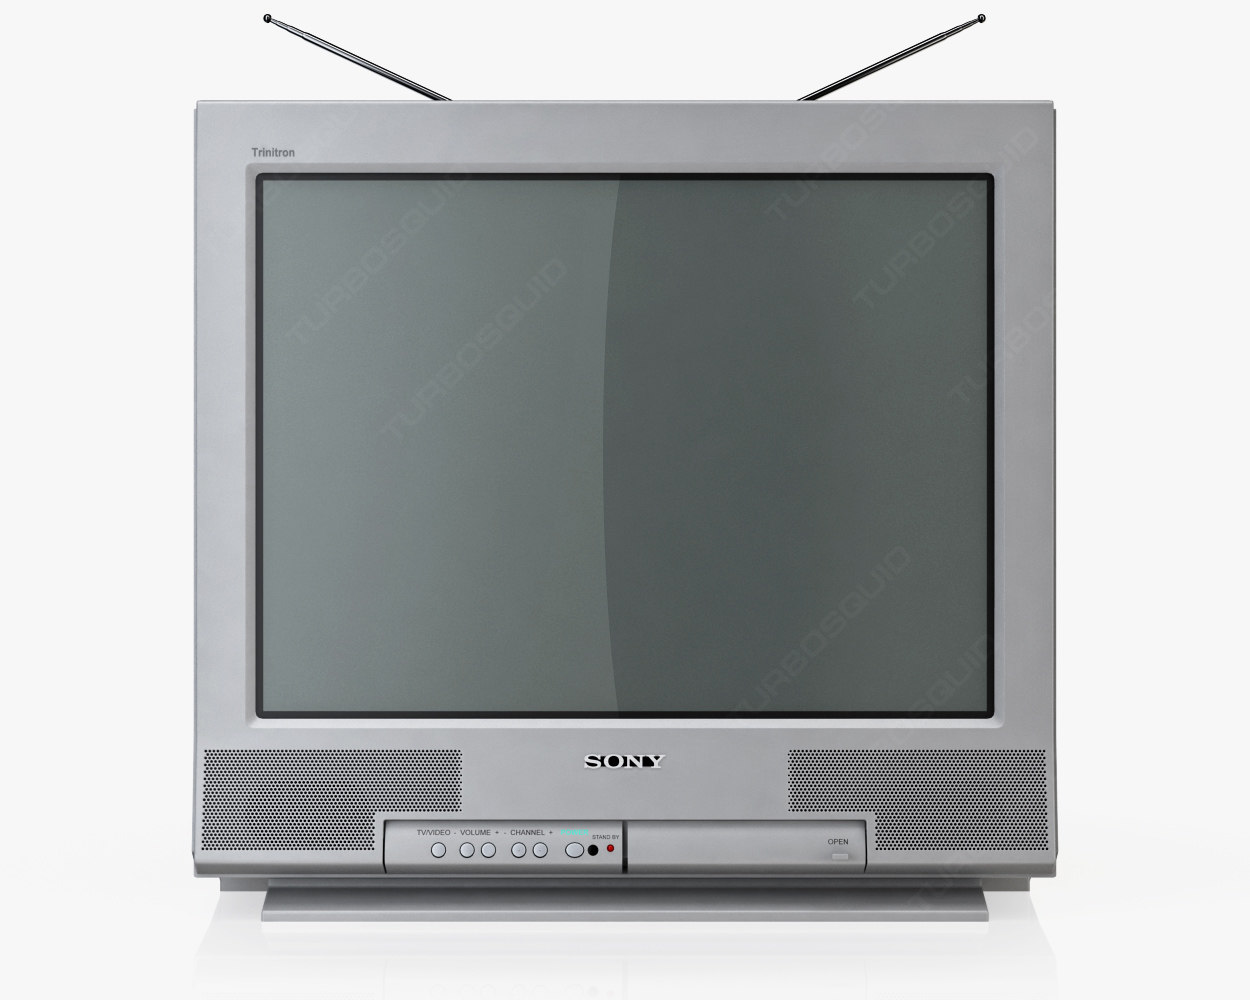 sony old tv models manuals